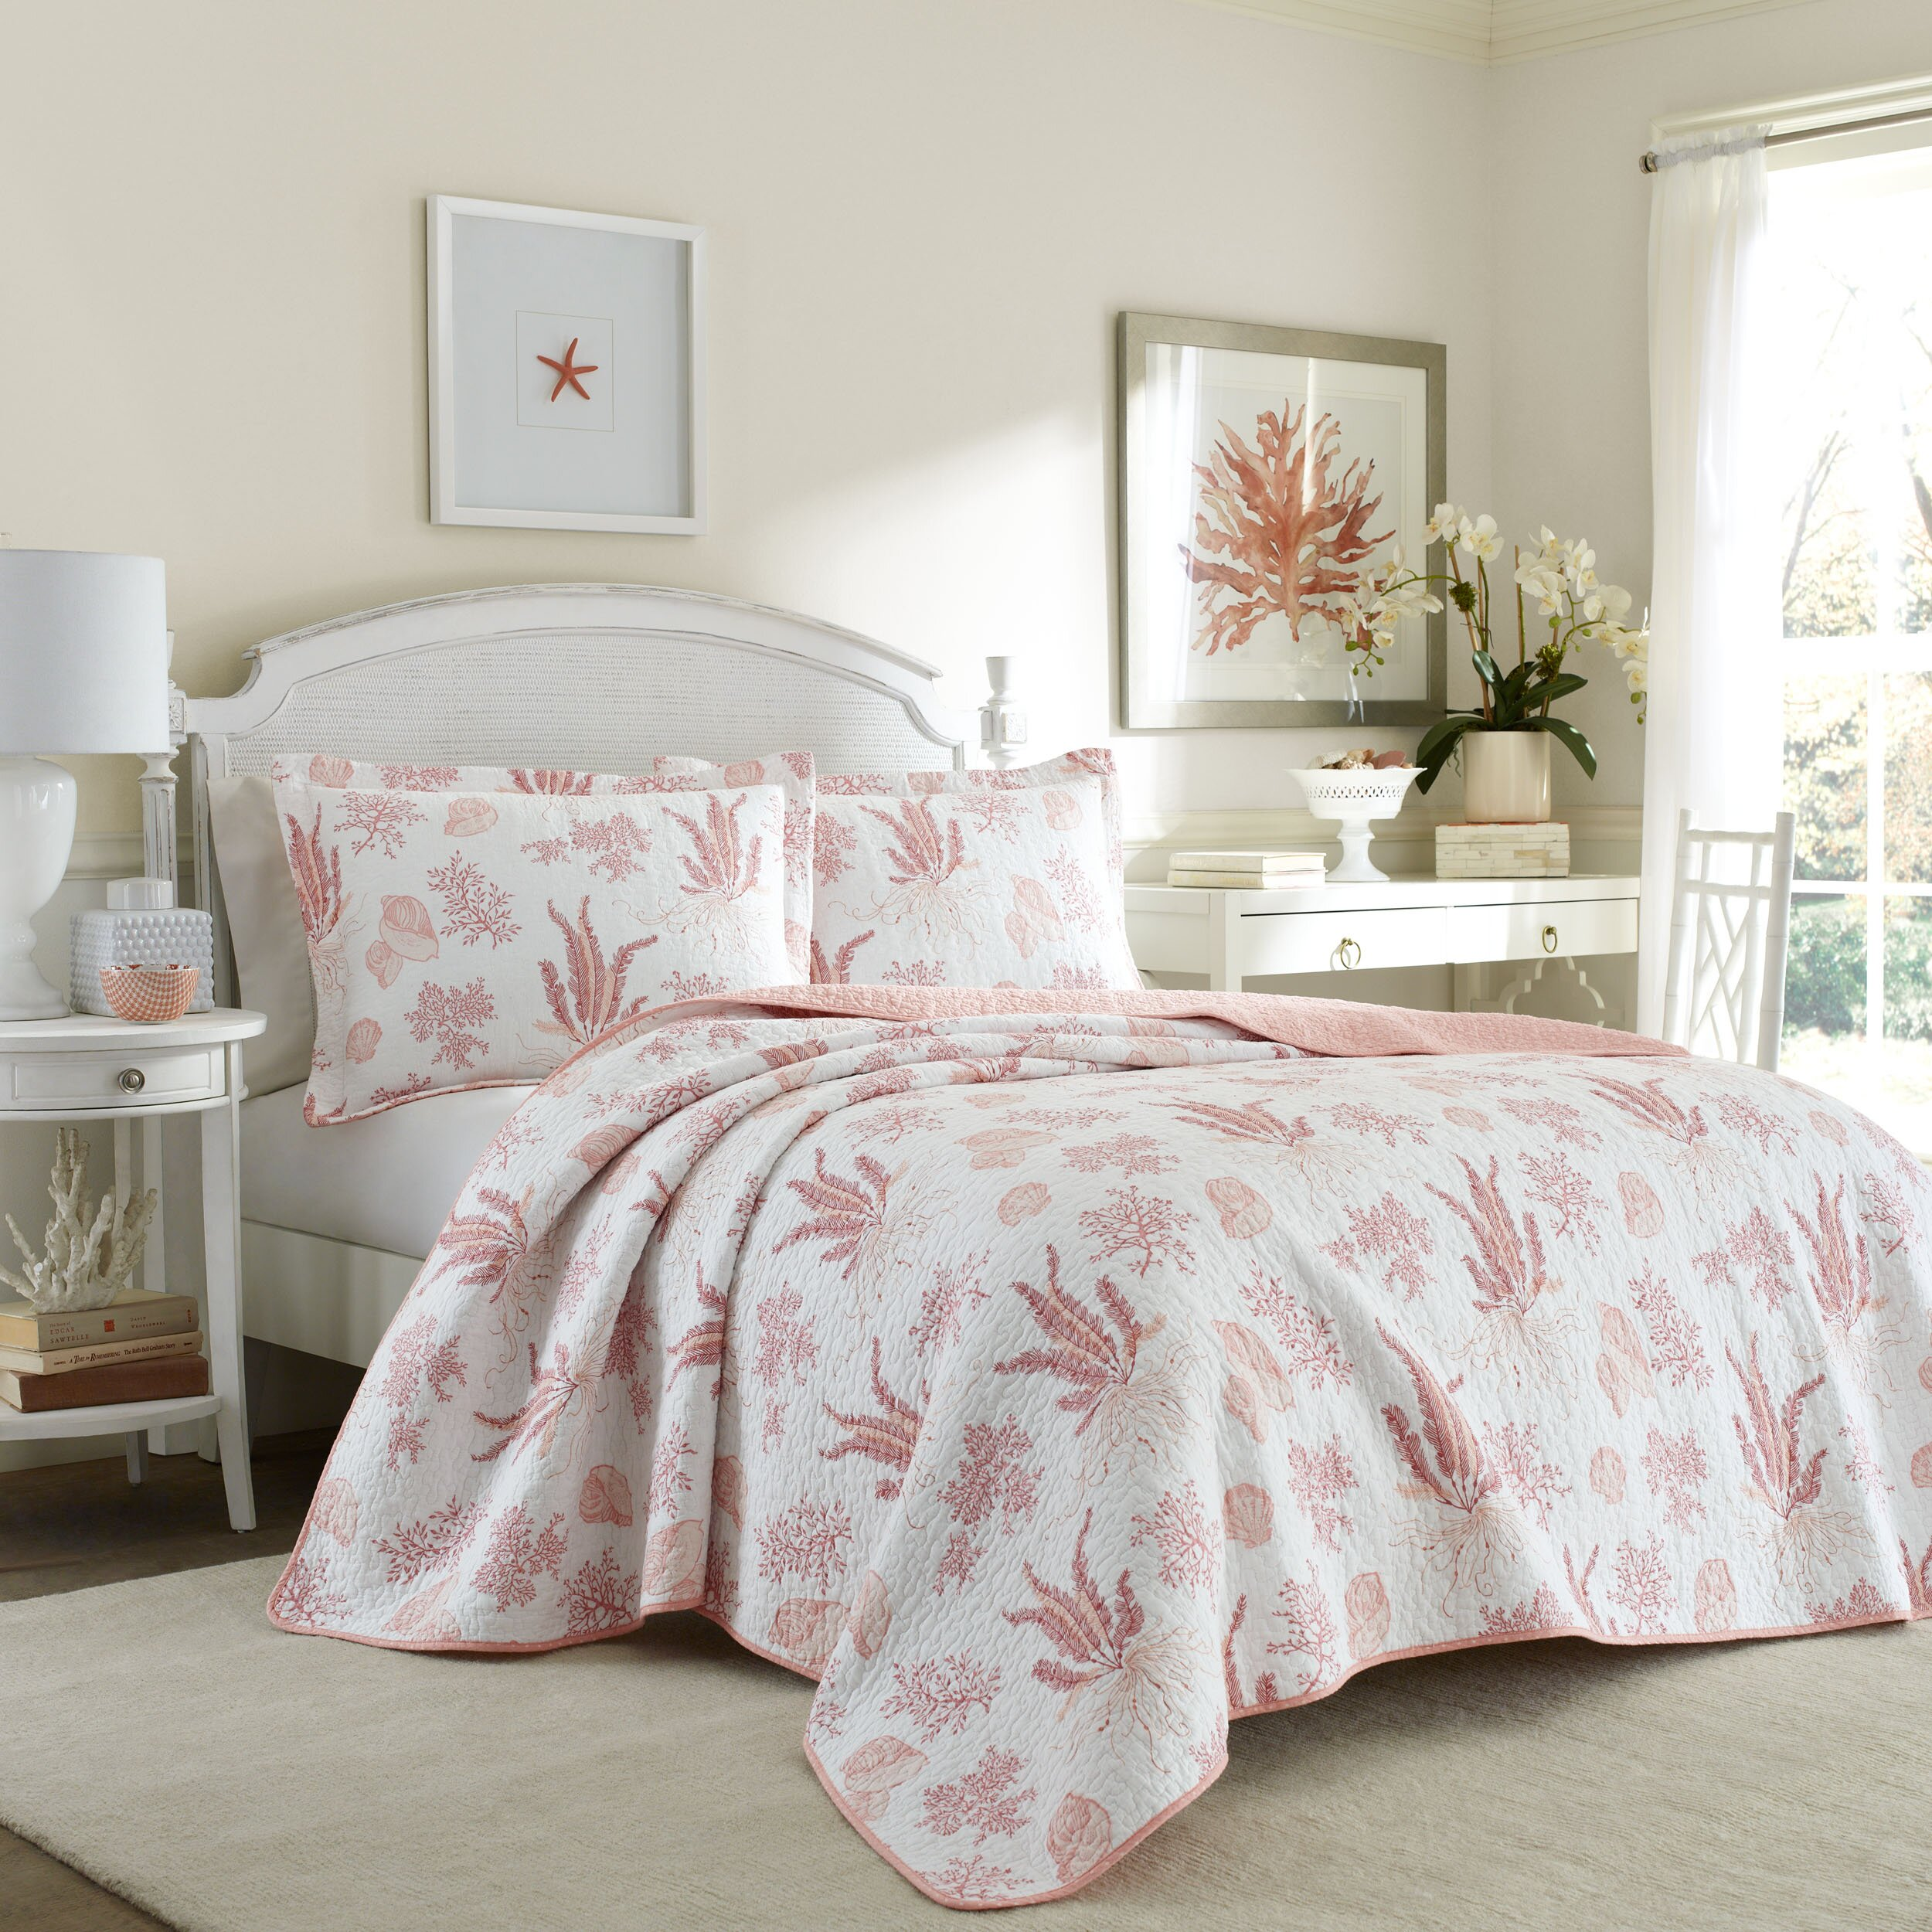 laura ashley home cape coral quilt set reviews wayfair supply. Black Bedroom Furniture Sets. Home Design Ideas